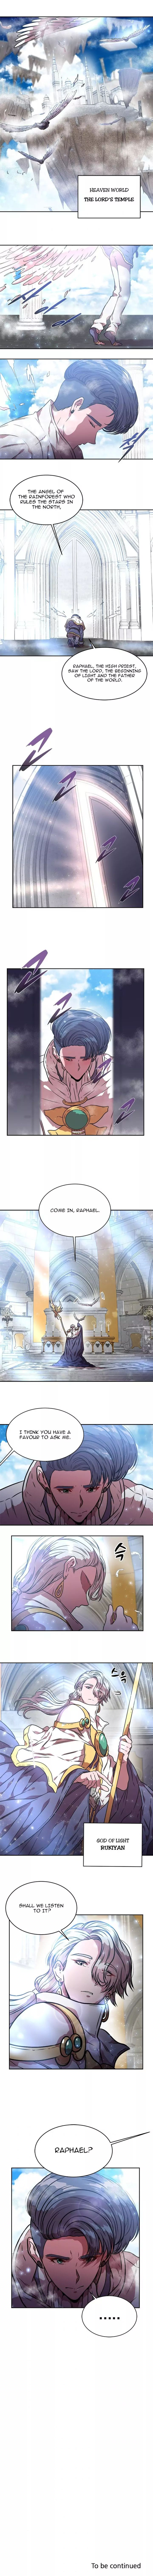 i_was_born_as_the_demon_lords_daughter_25_6